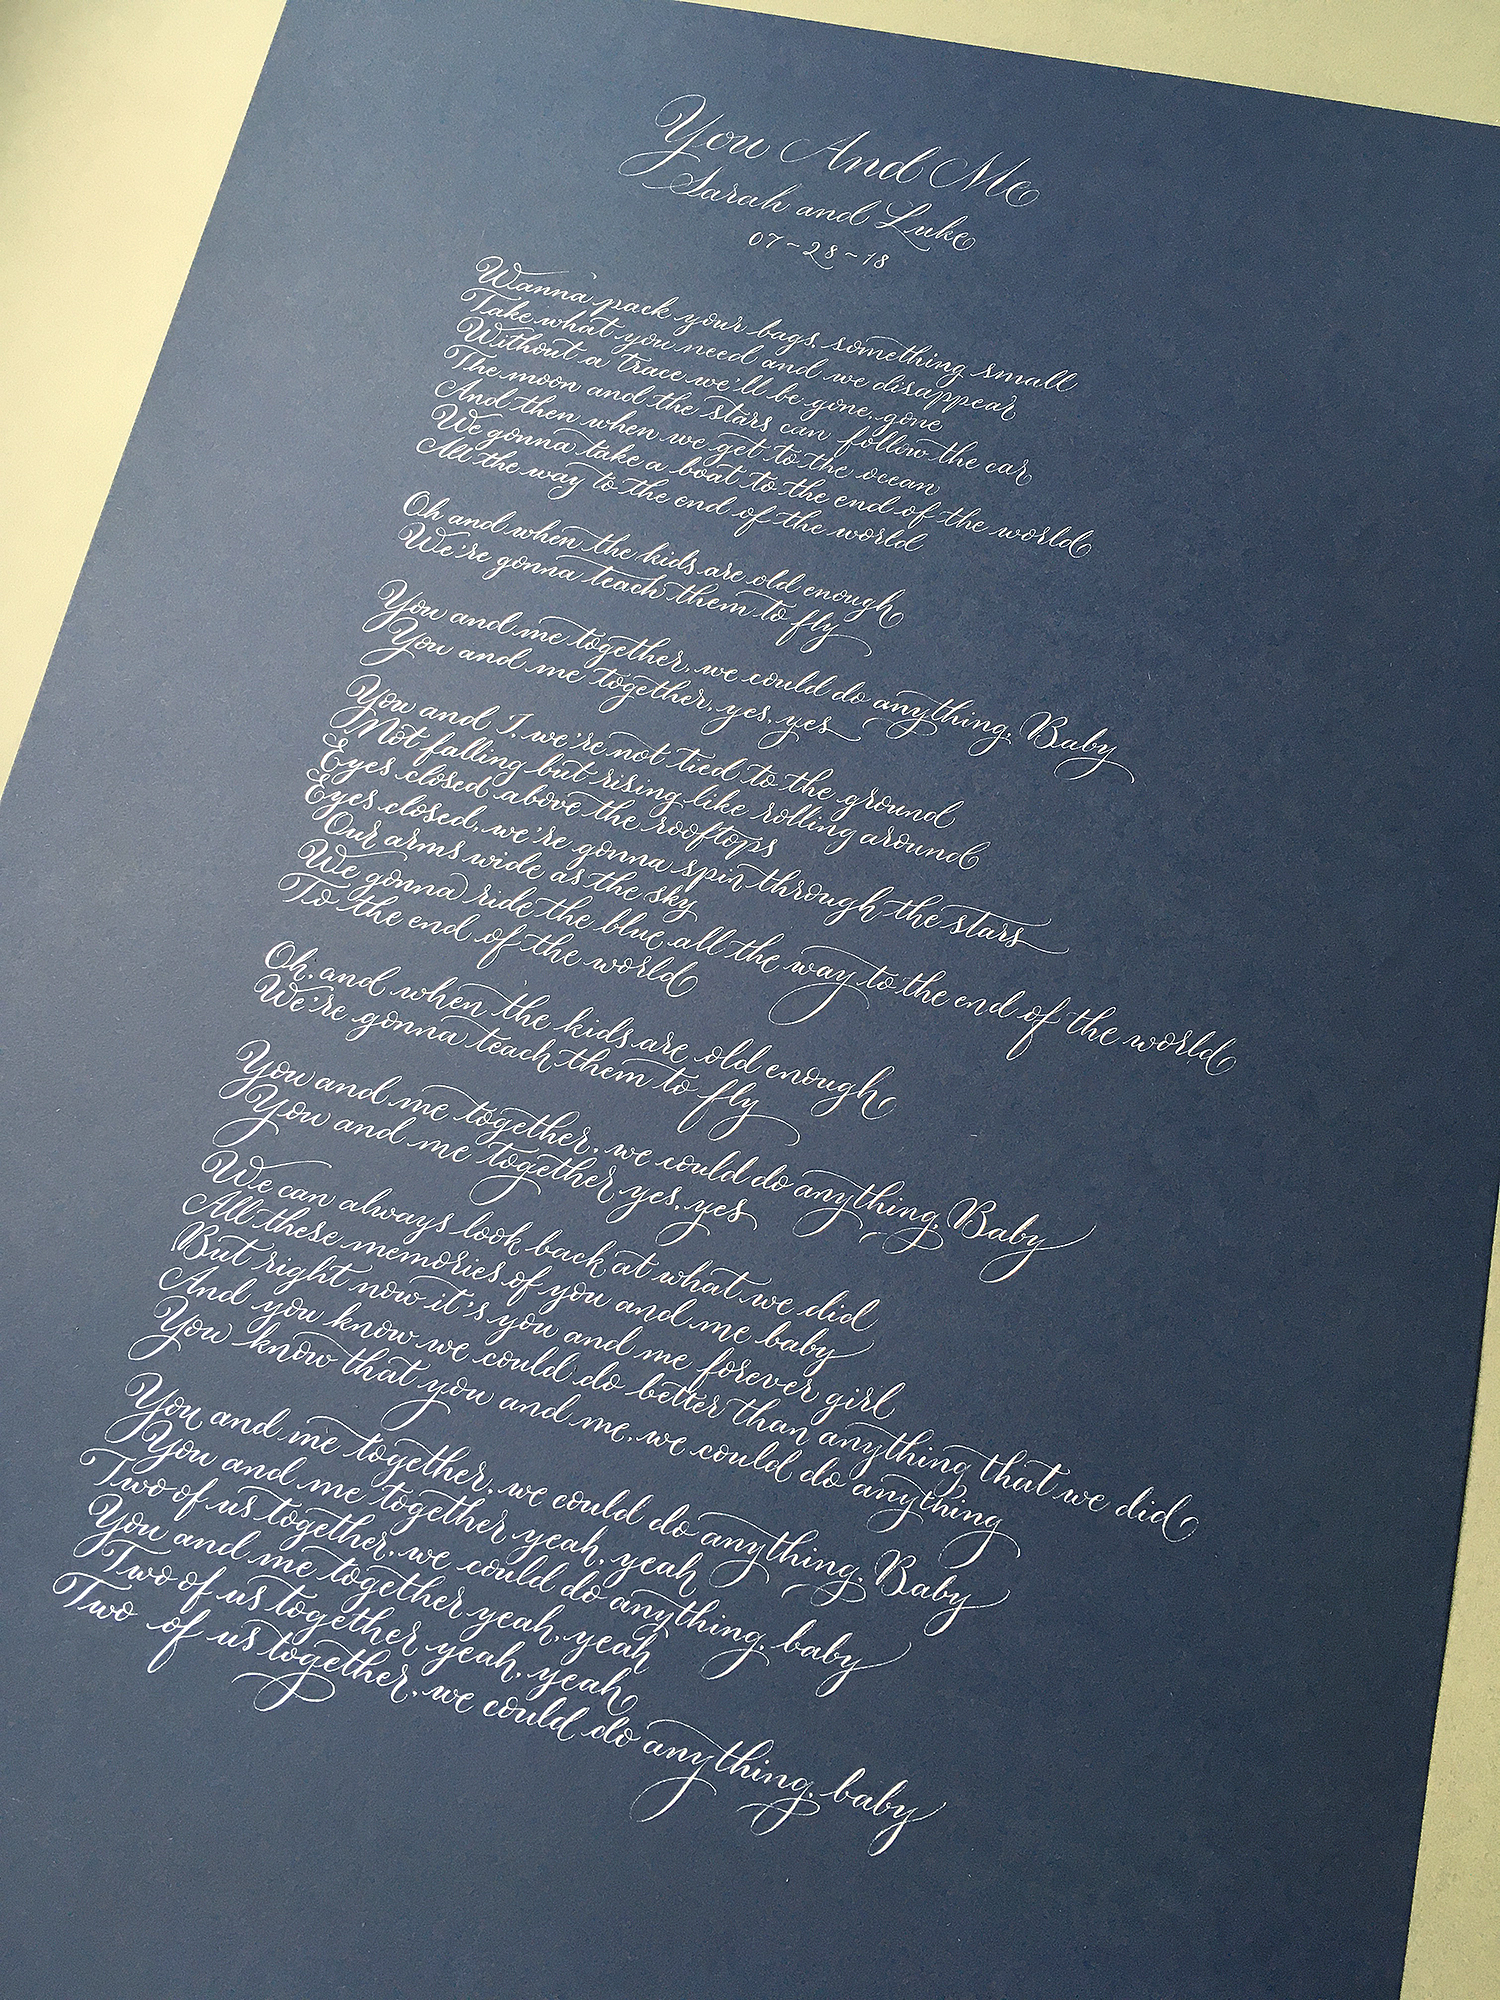 calligraphy commission white ink on navy blue song lyrics